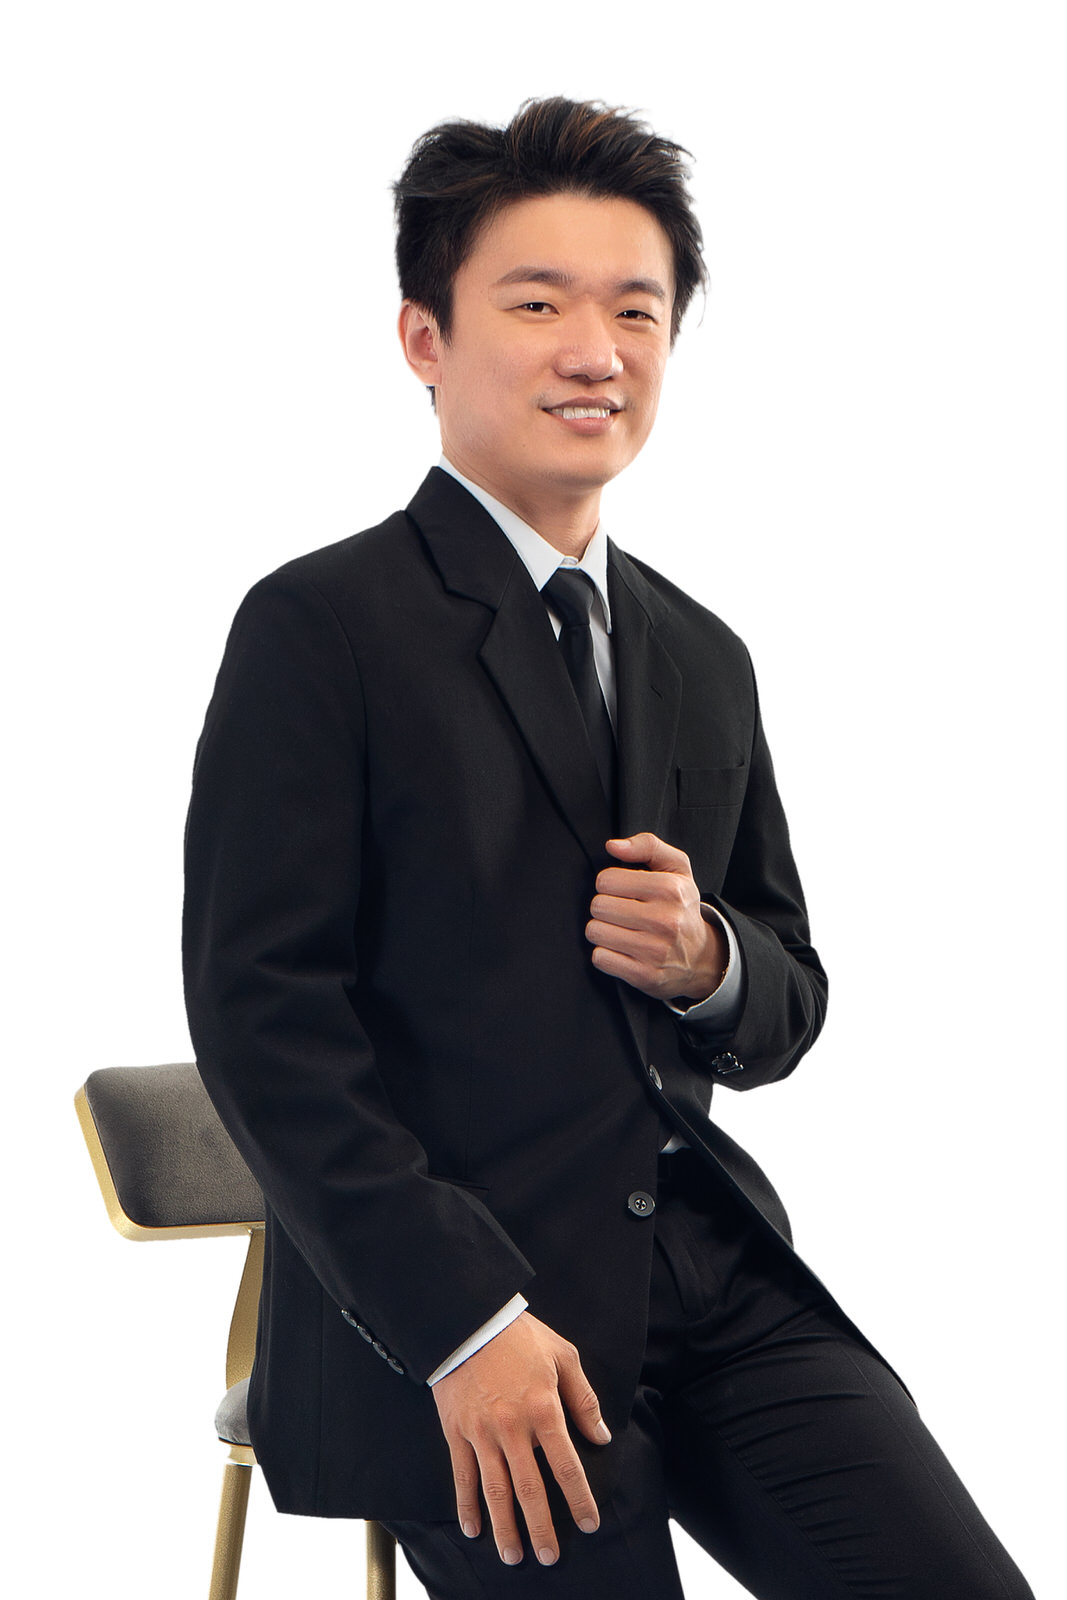 Dr. Saw Chee Wei